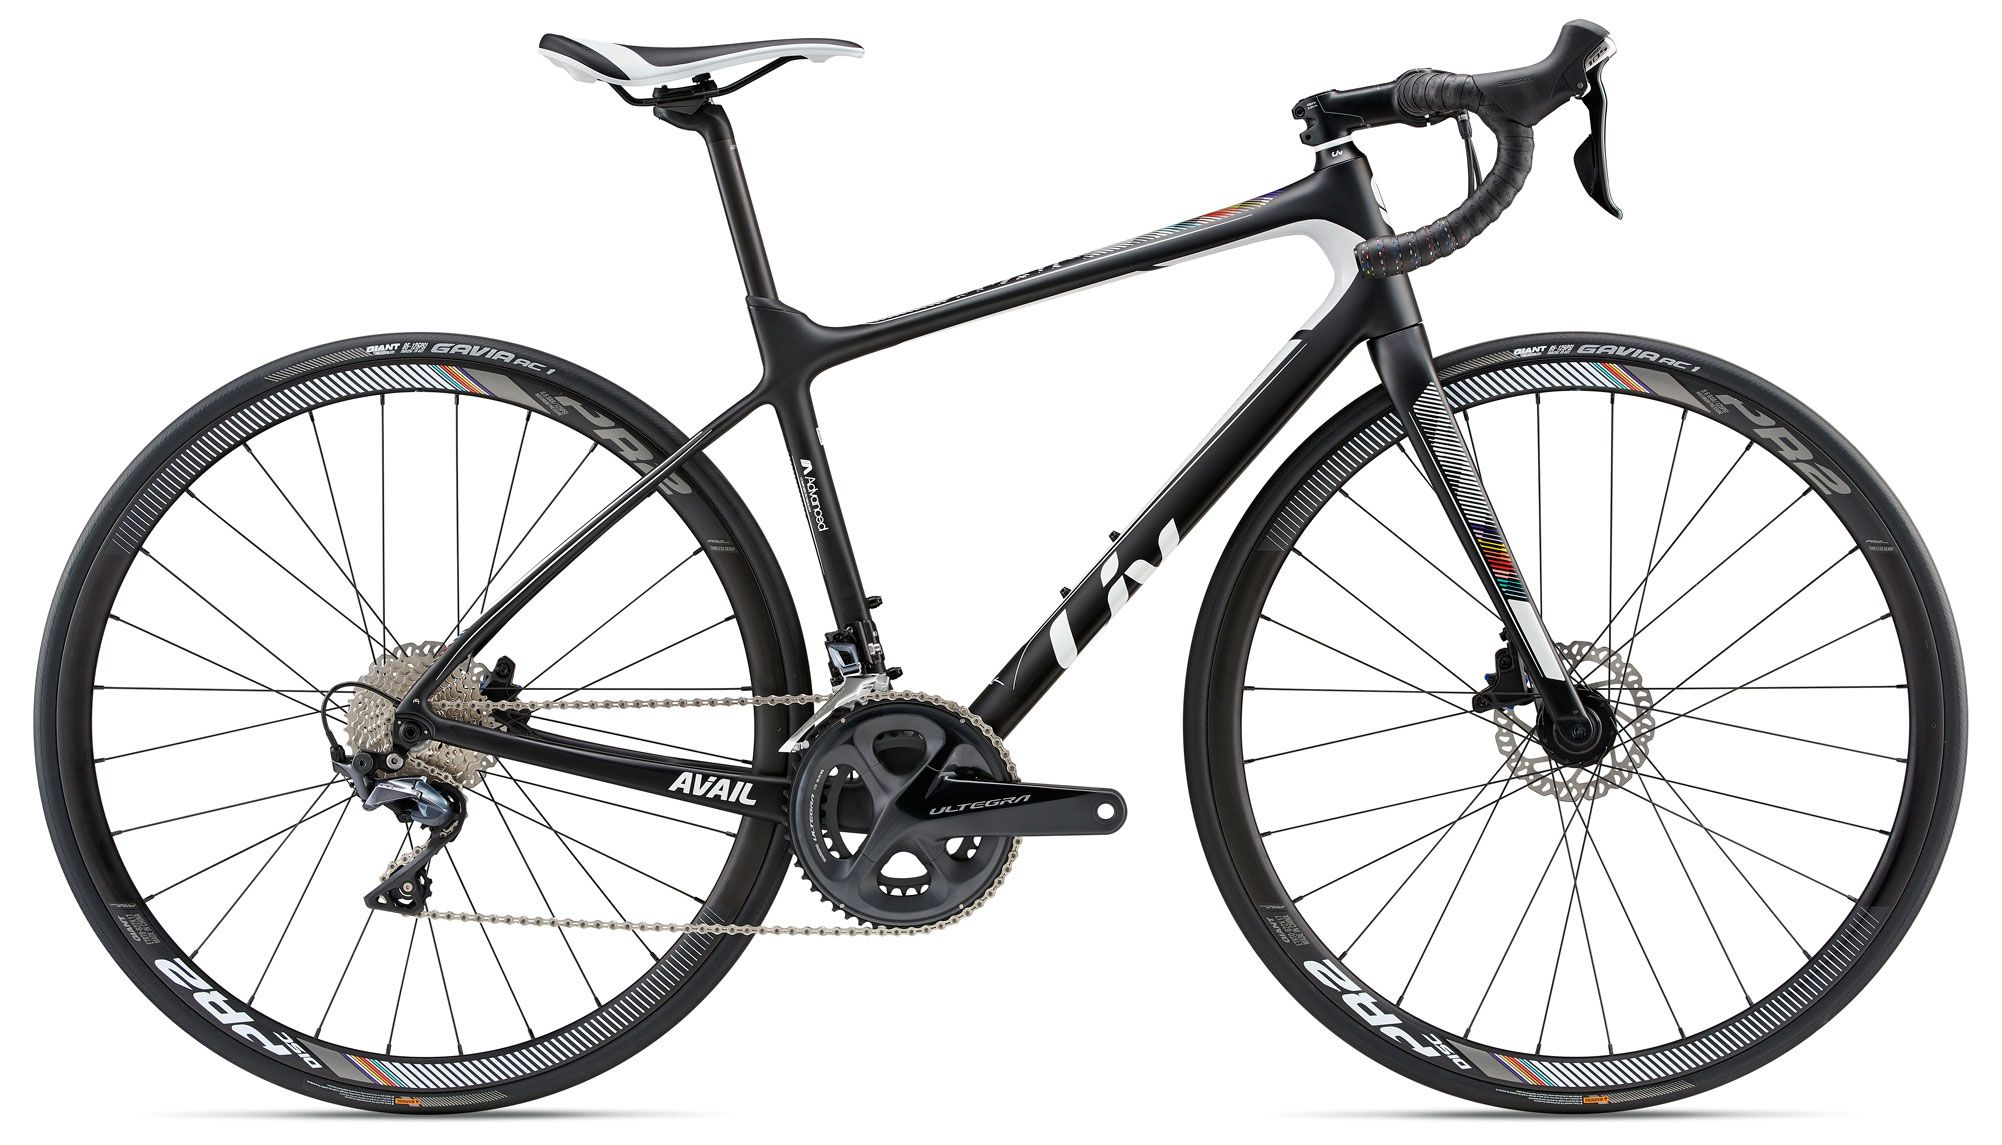 Велосипед Giant Avail Advanced 1 2018 велосипед giant defy advanced pro 0 compact 2015